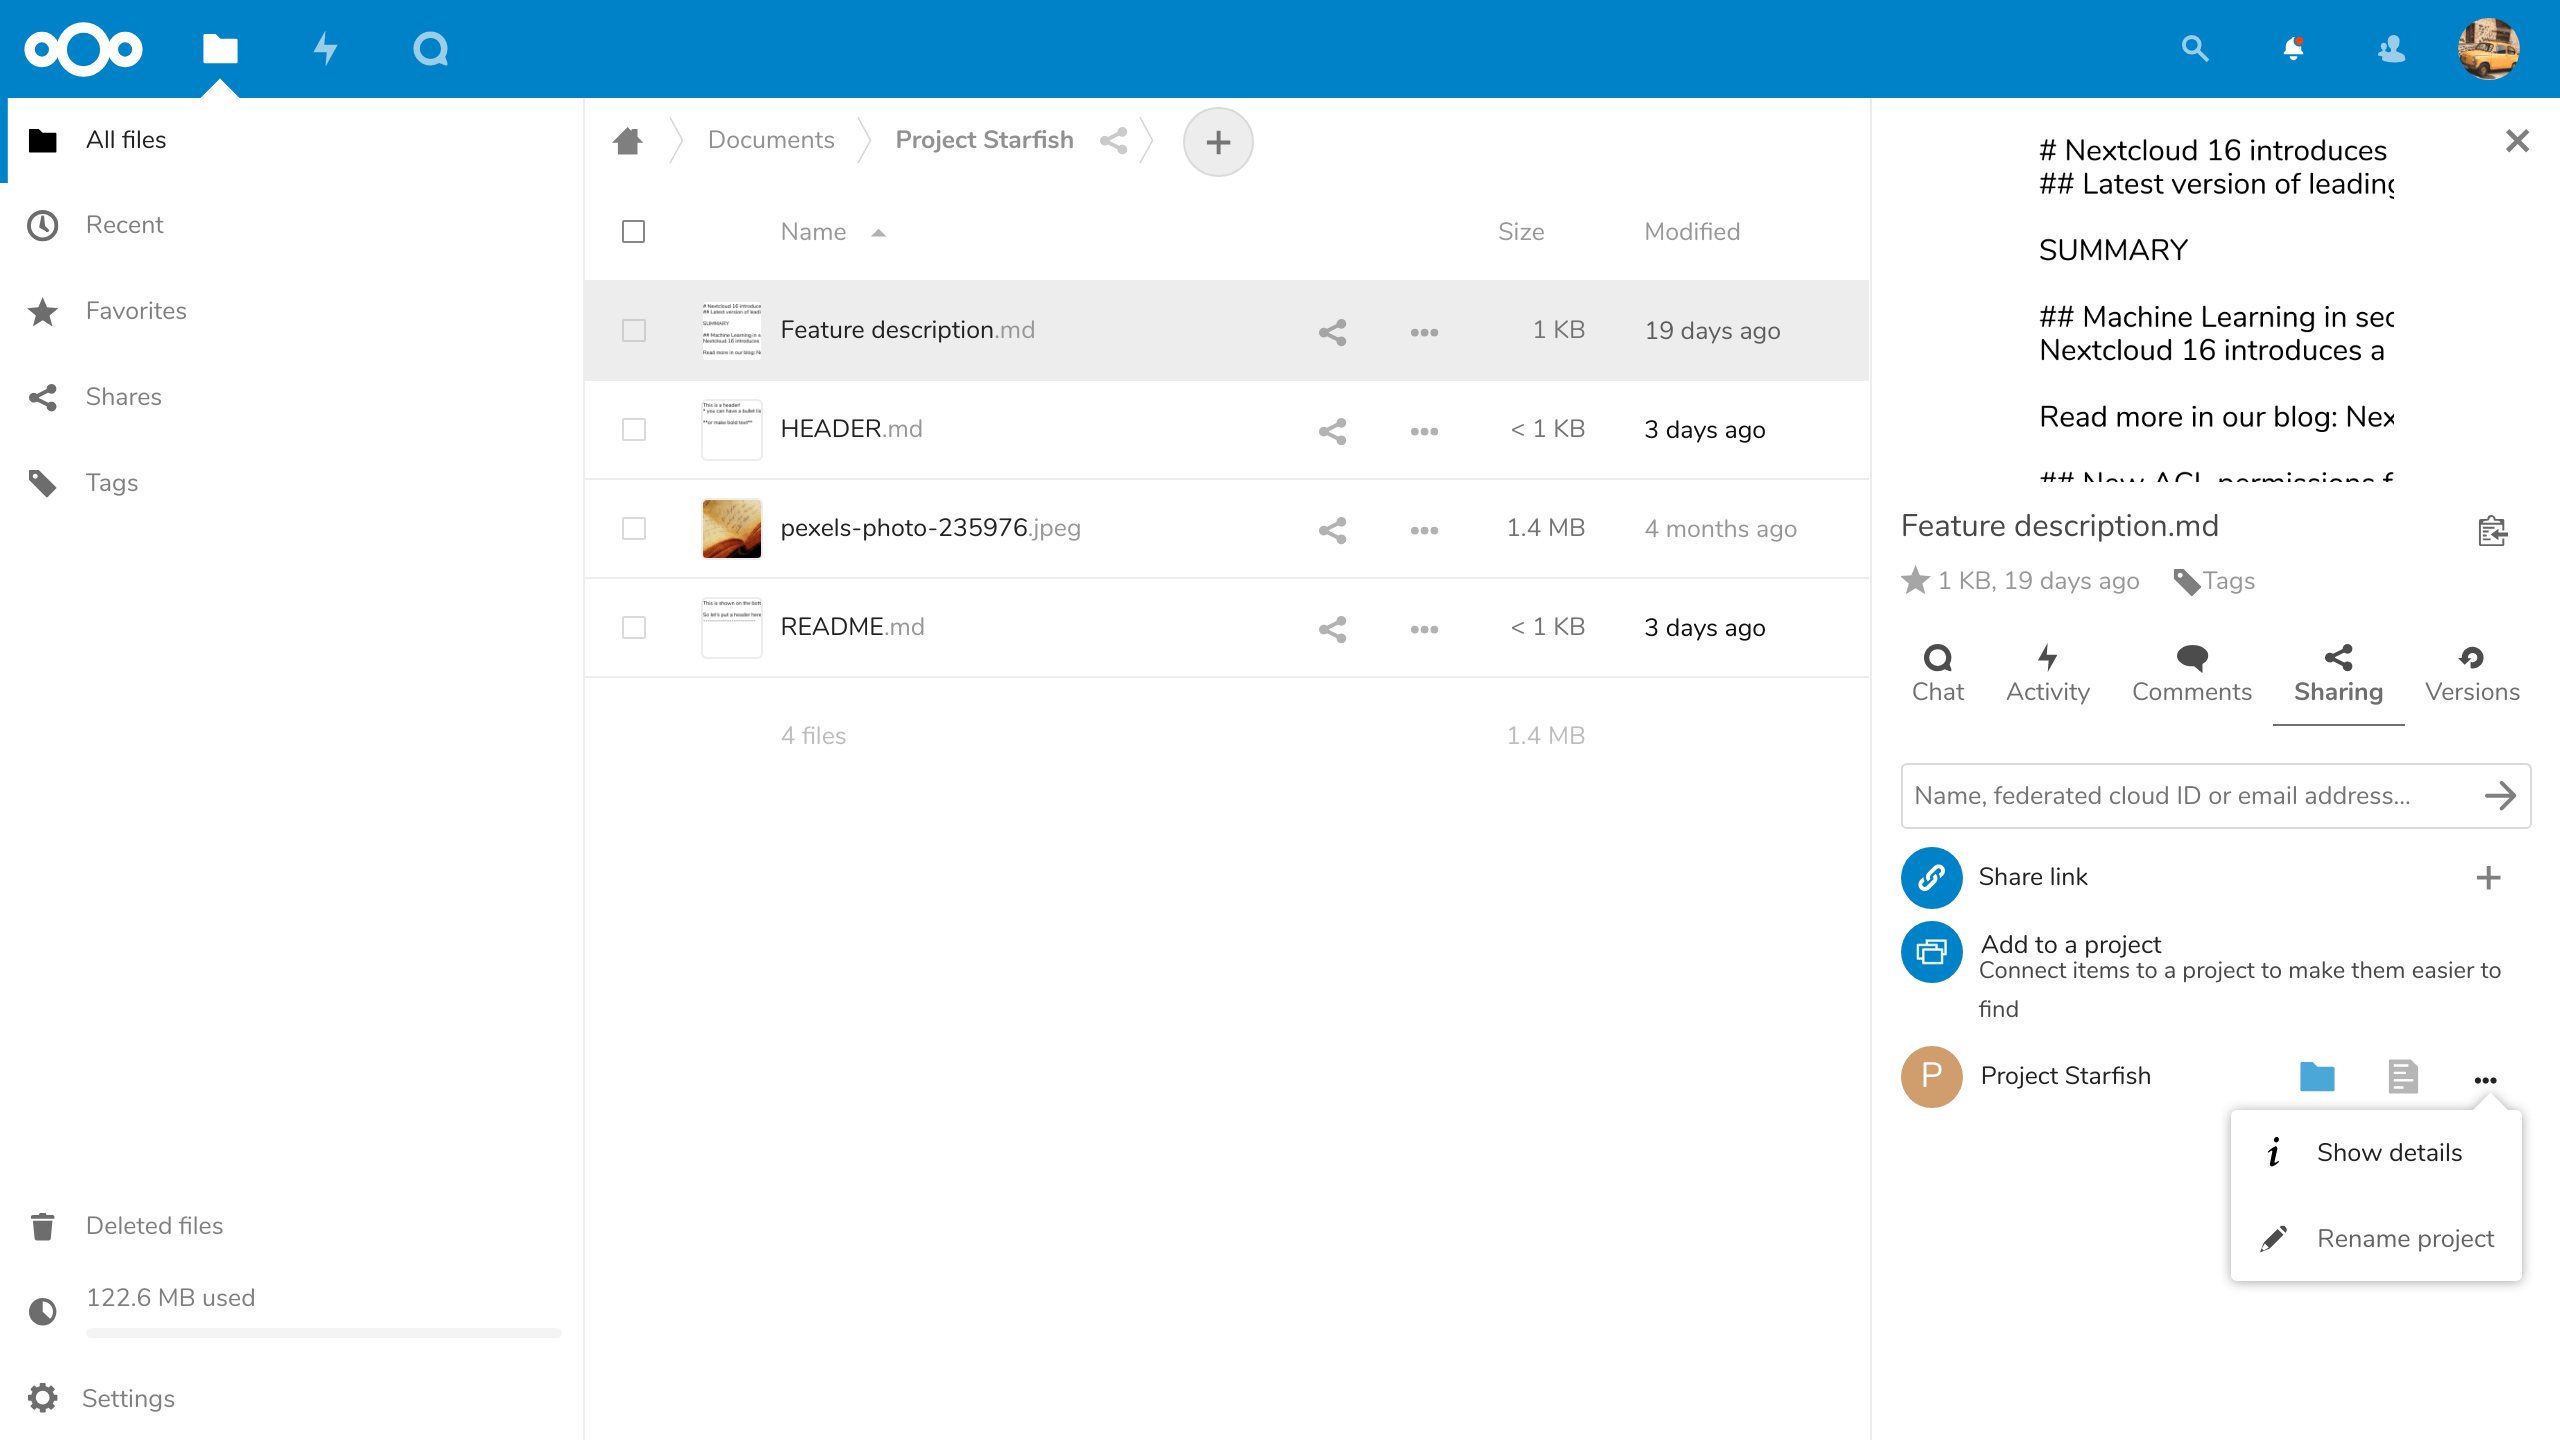 Nextcloud 16 allows you to link resources to keep track of your projects